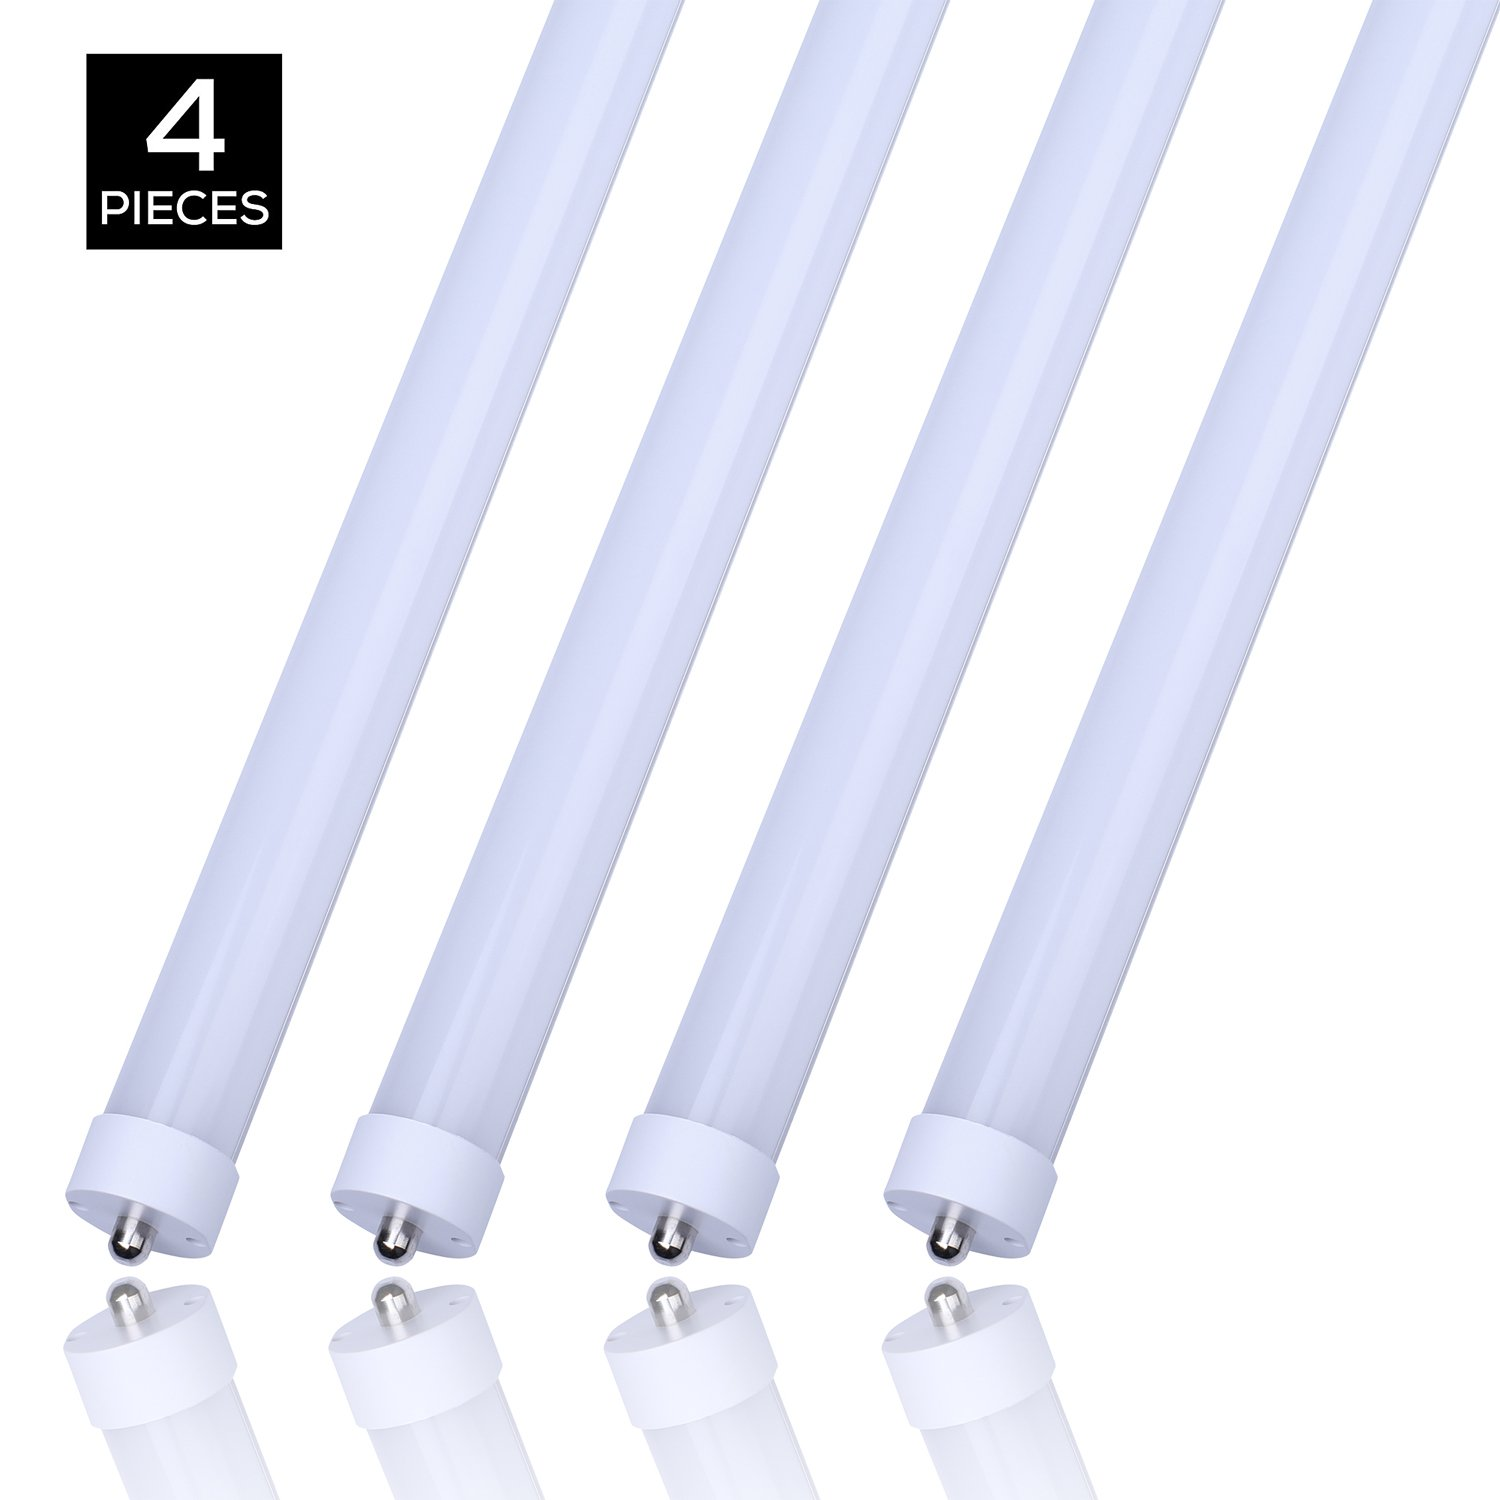 8ft Led Light Bulbs 45W, Replacement 100W Fluorescent Lamp Shop Lights, 8FT Single Pin FA8 Base Dual-Ended Power Cold White 6000K 4500LM, Frosted Cover, AC 85-265V 4 Pack